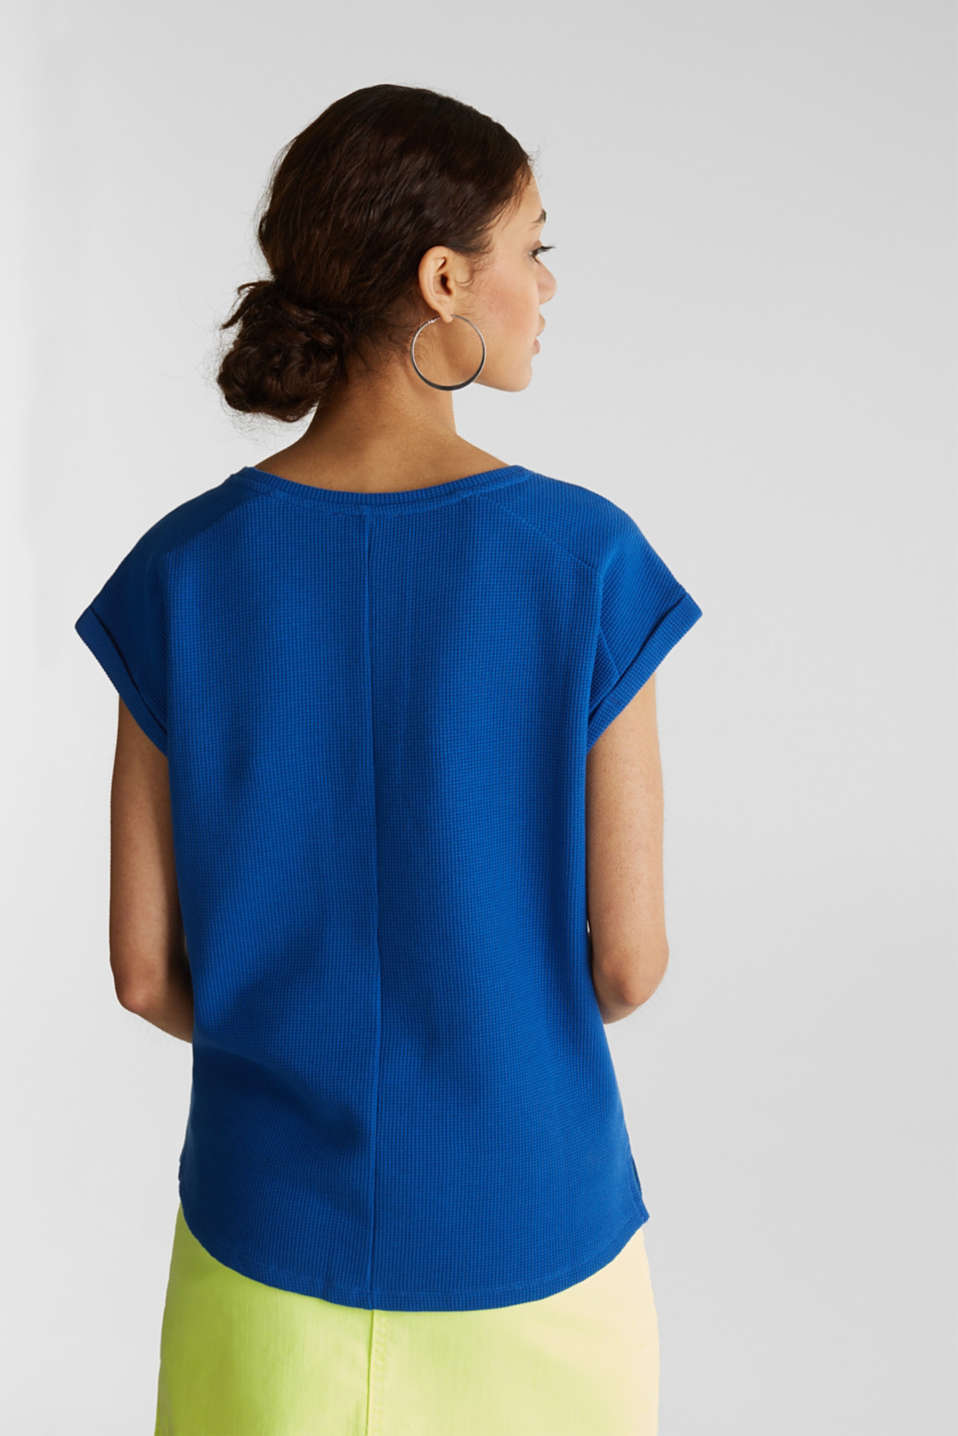 Textured stretch top with a pocket, BRIGHT BLUE, detail image number 3